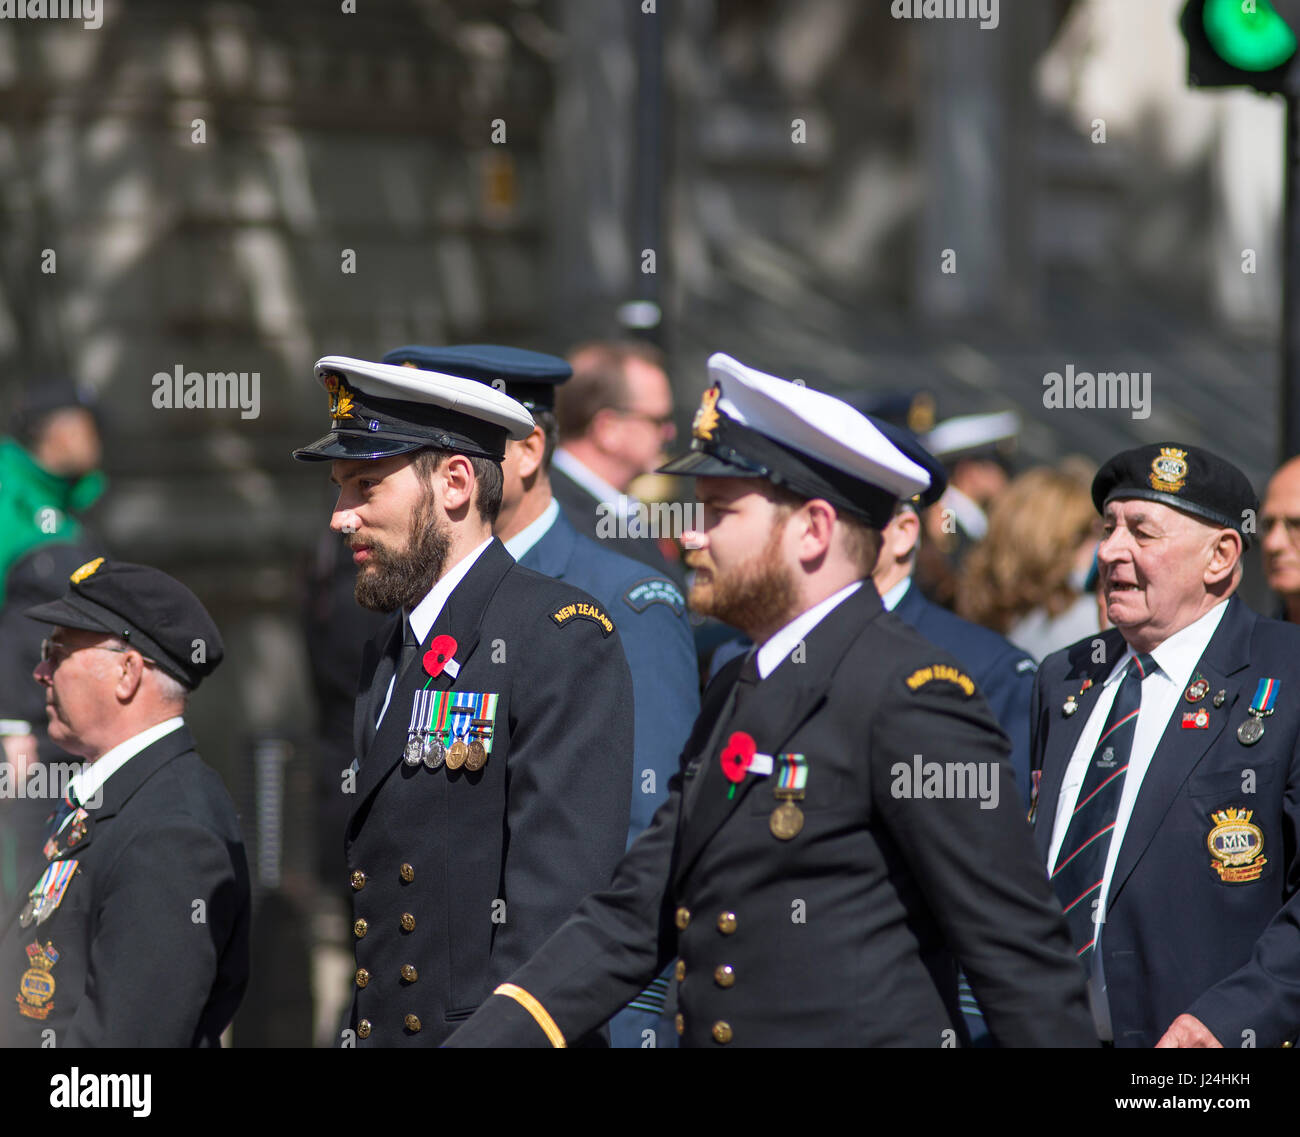 Cenotaph, Whitehall, London UK. 25th April, 2017. ANZAC Day ceremony at the Cenotaph attended by High Commissioners - Stock Image